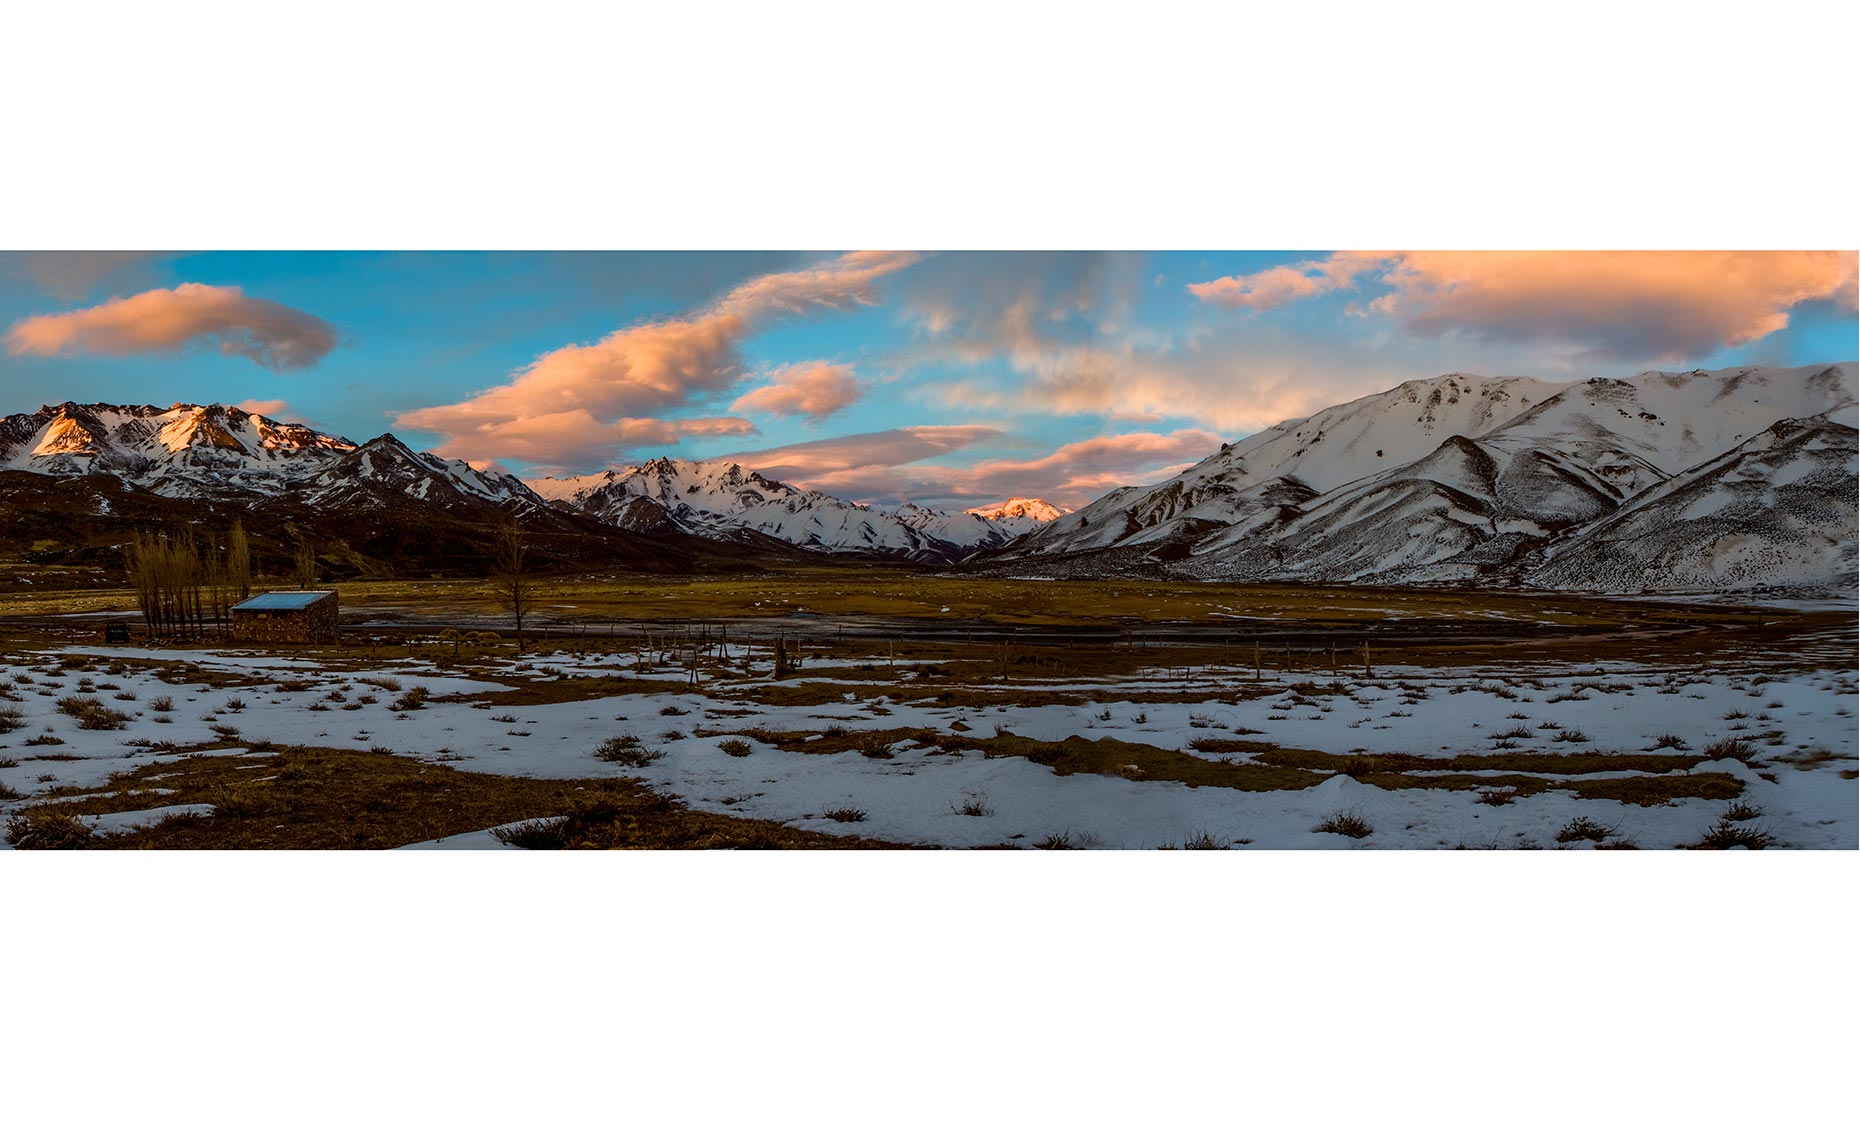 67_Las_Lenas_Argentina_Environment_Landscape_Chris_Wellhausen_Photography.JPG